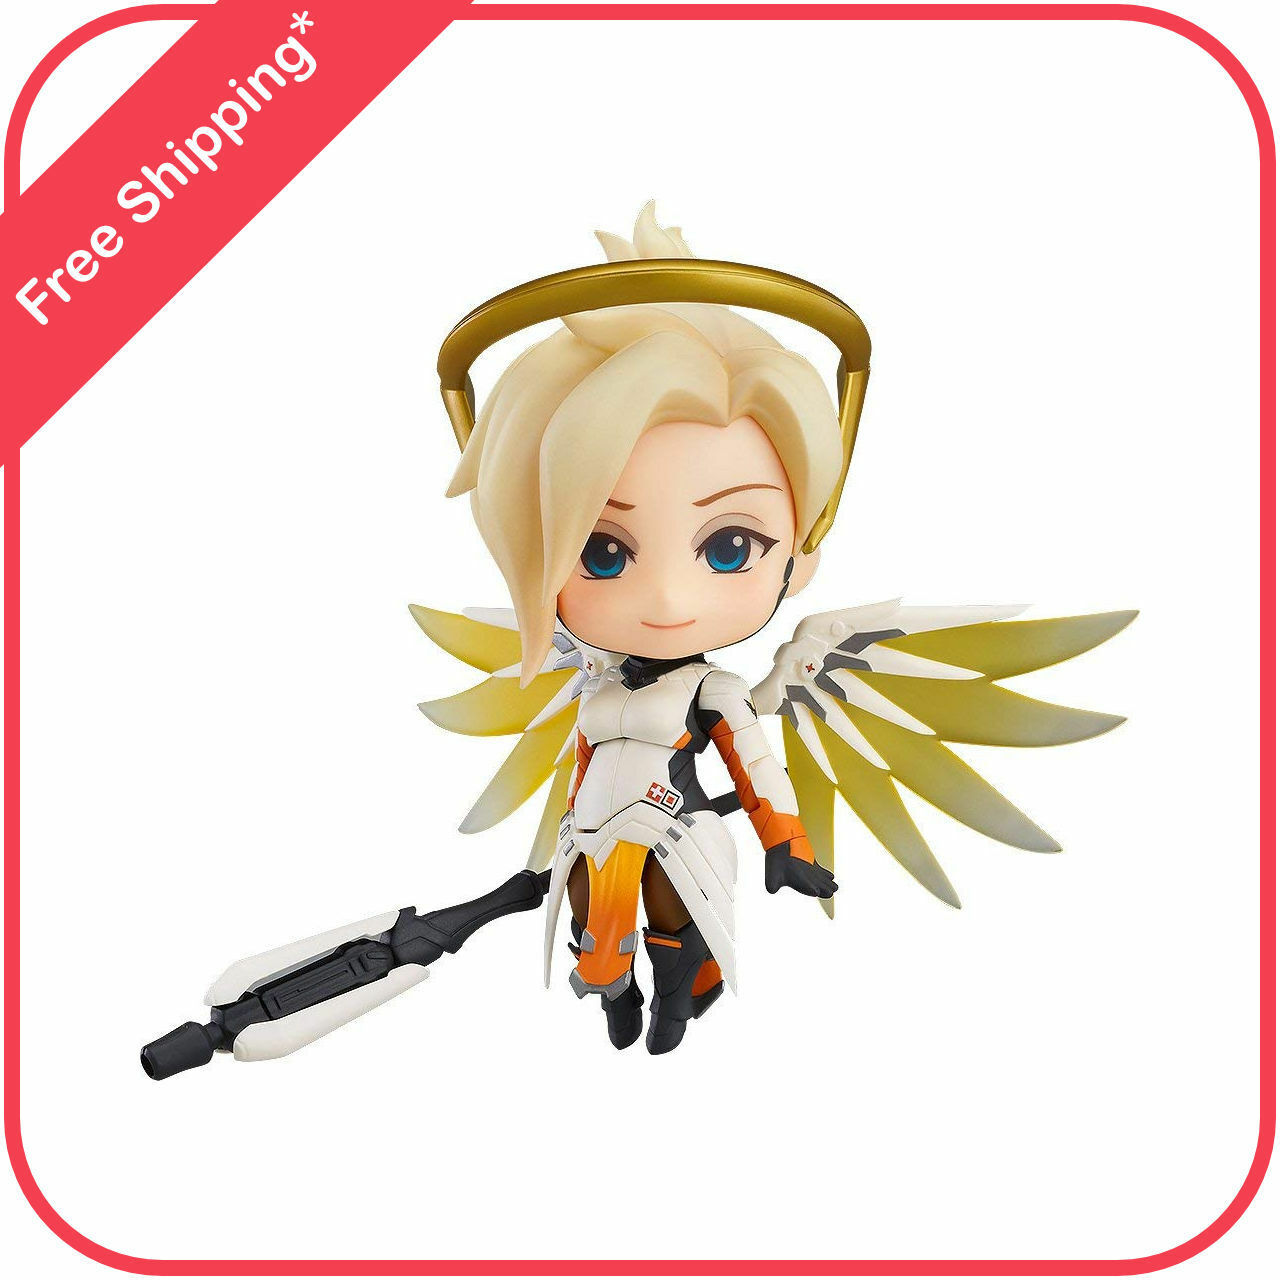 Mercy Blizzard Overwatch Nendoroid figure by Good Smile Company